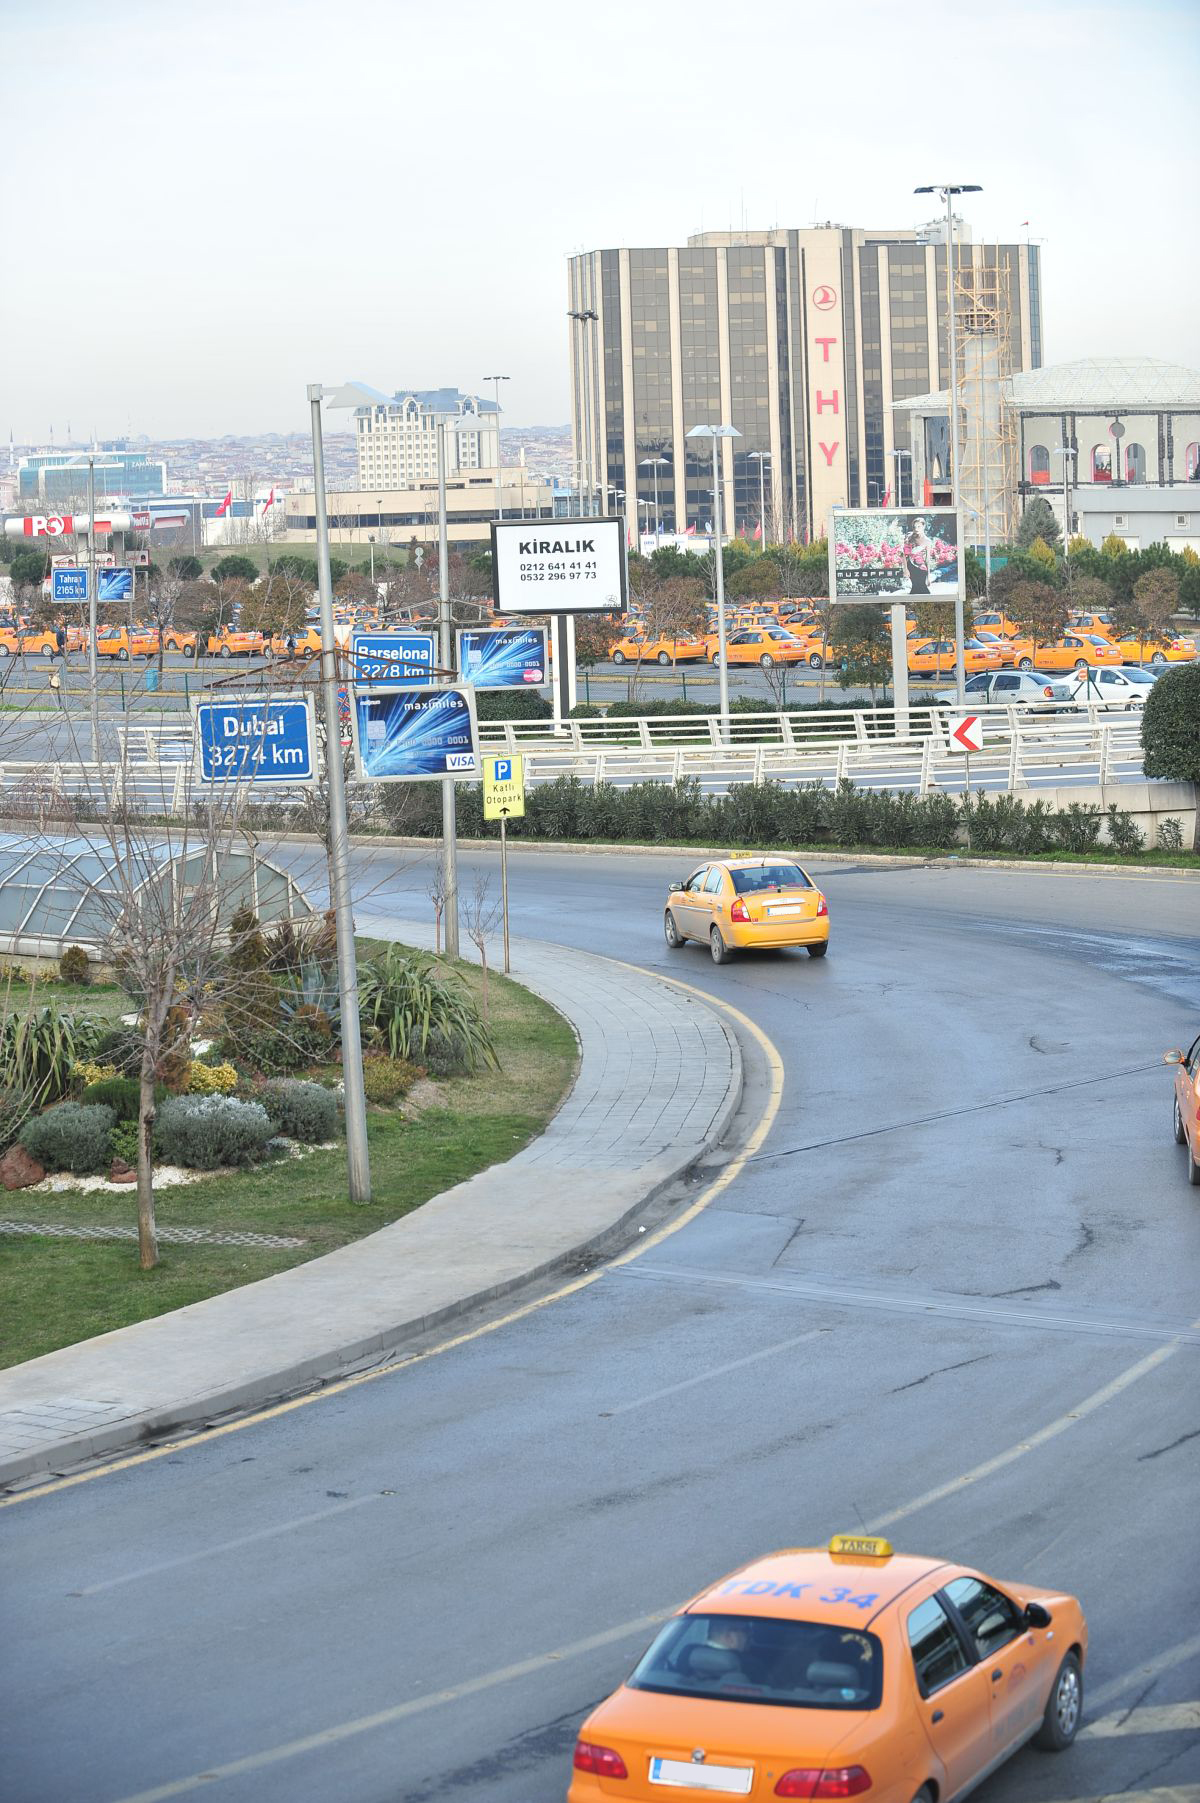 Durukan Advertising Ataturk Airport Sign A-28